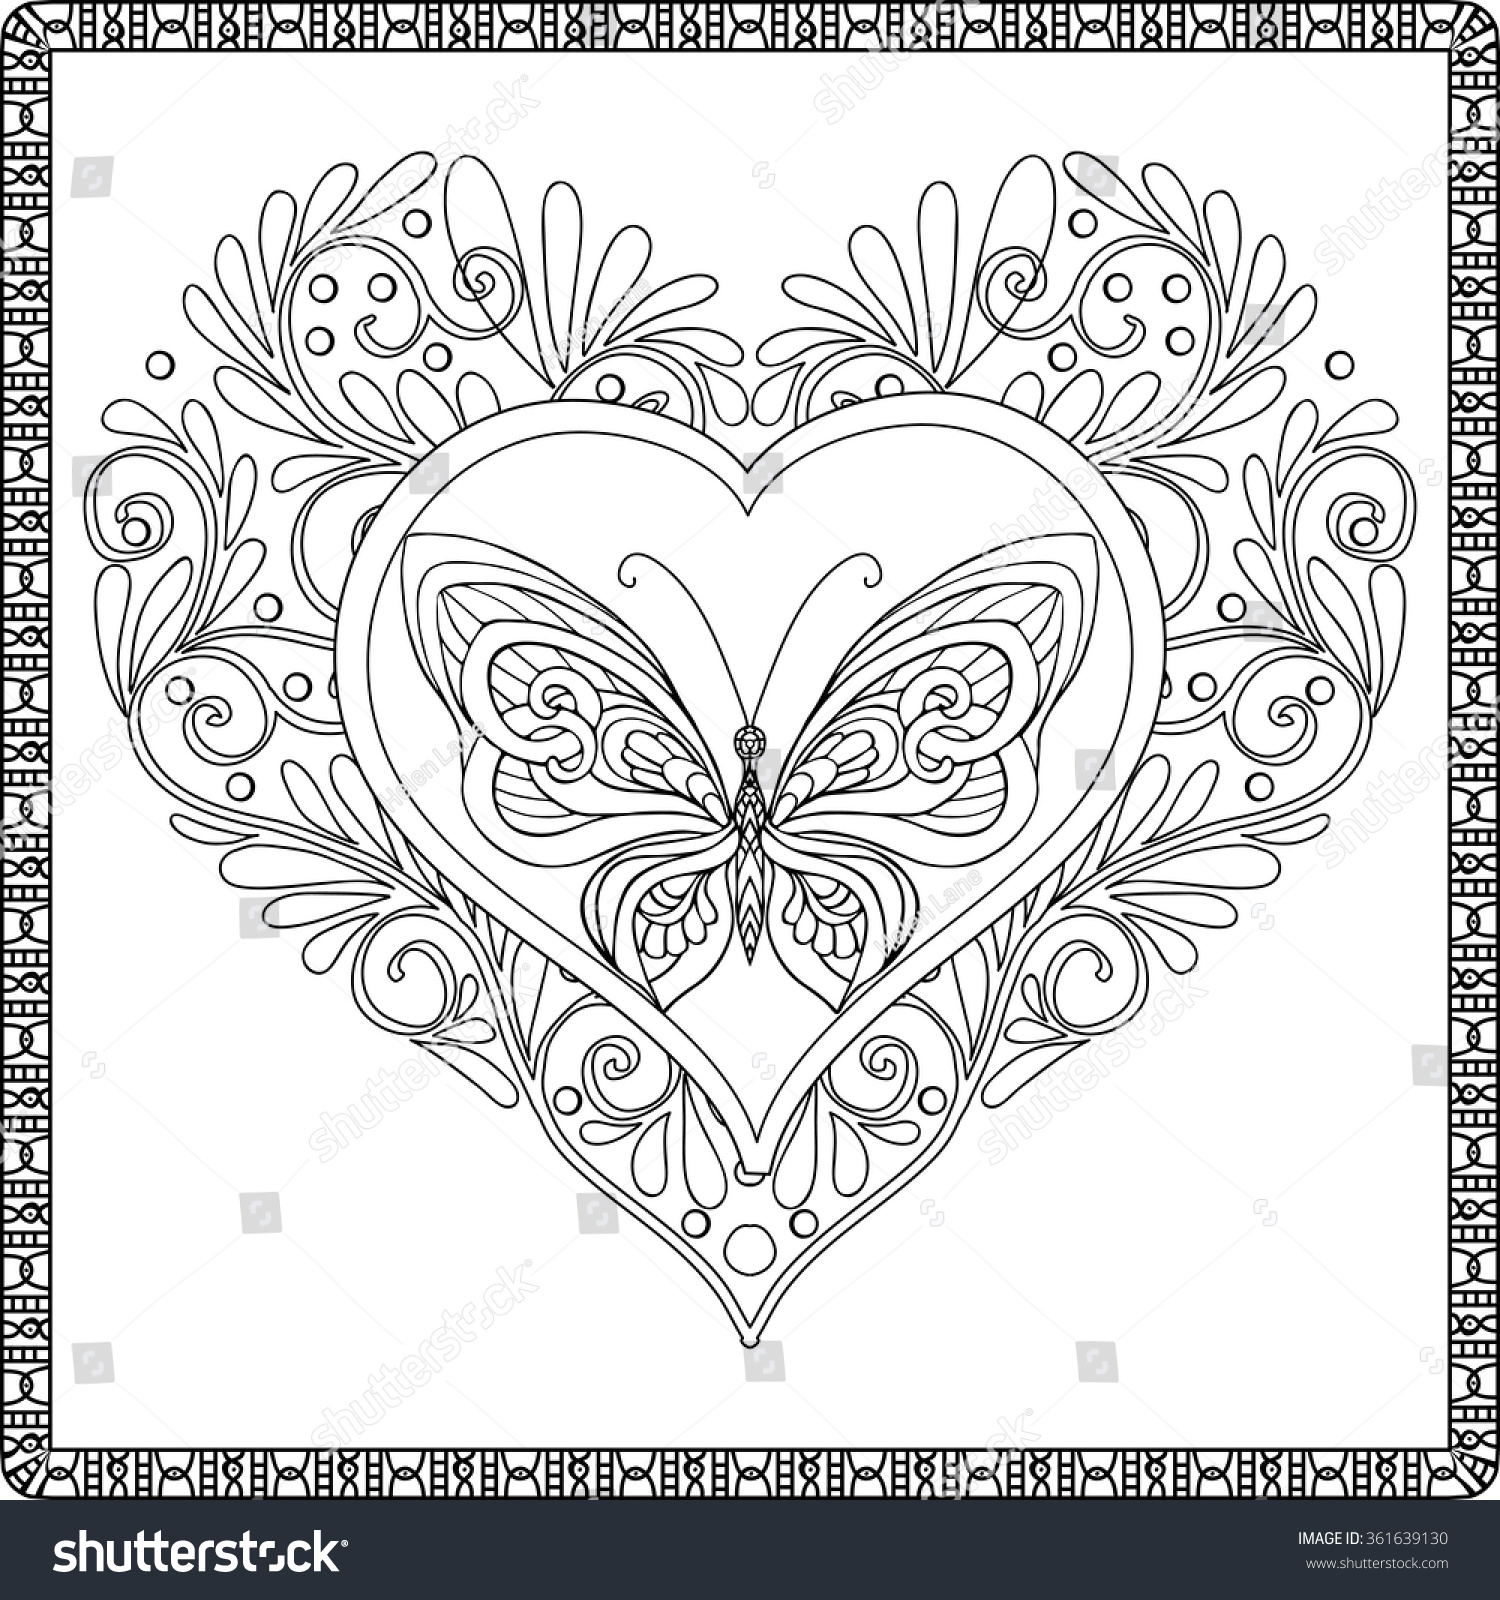 butterfly coloring pages for adults eassume - Advanced Coloring Pages Butterfly